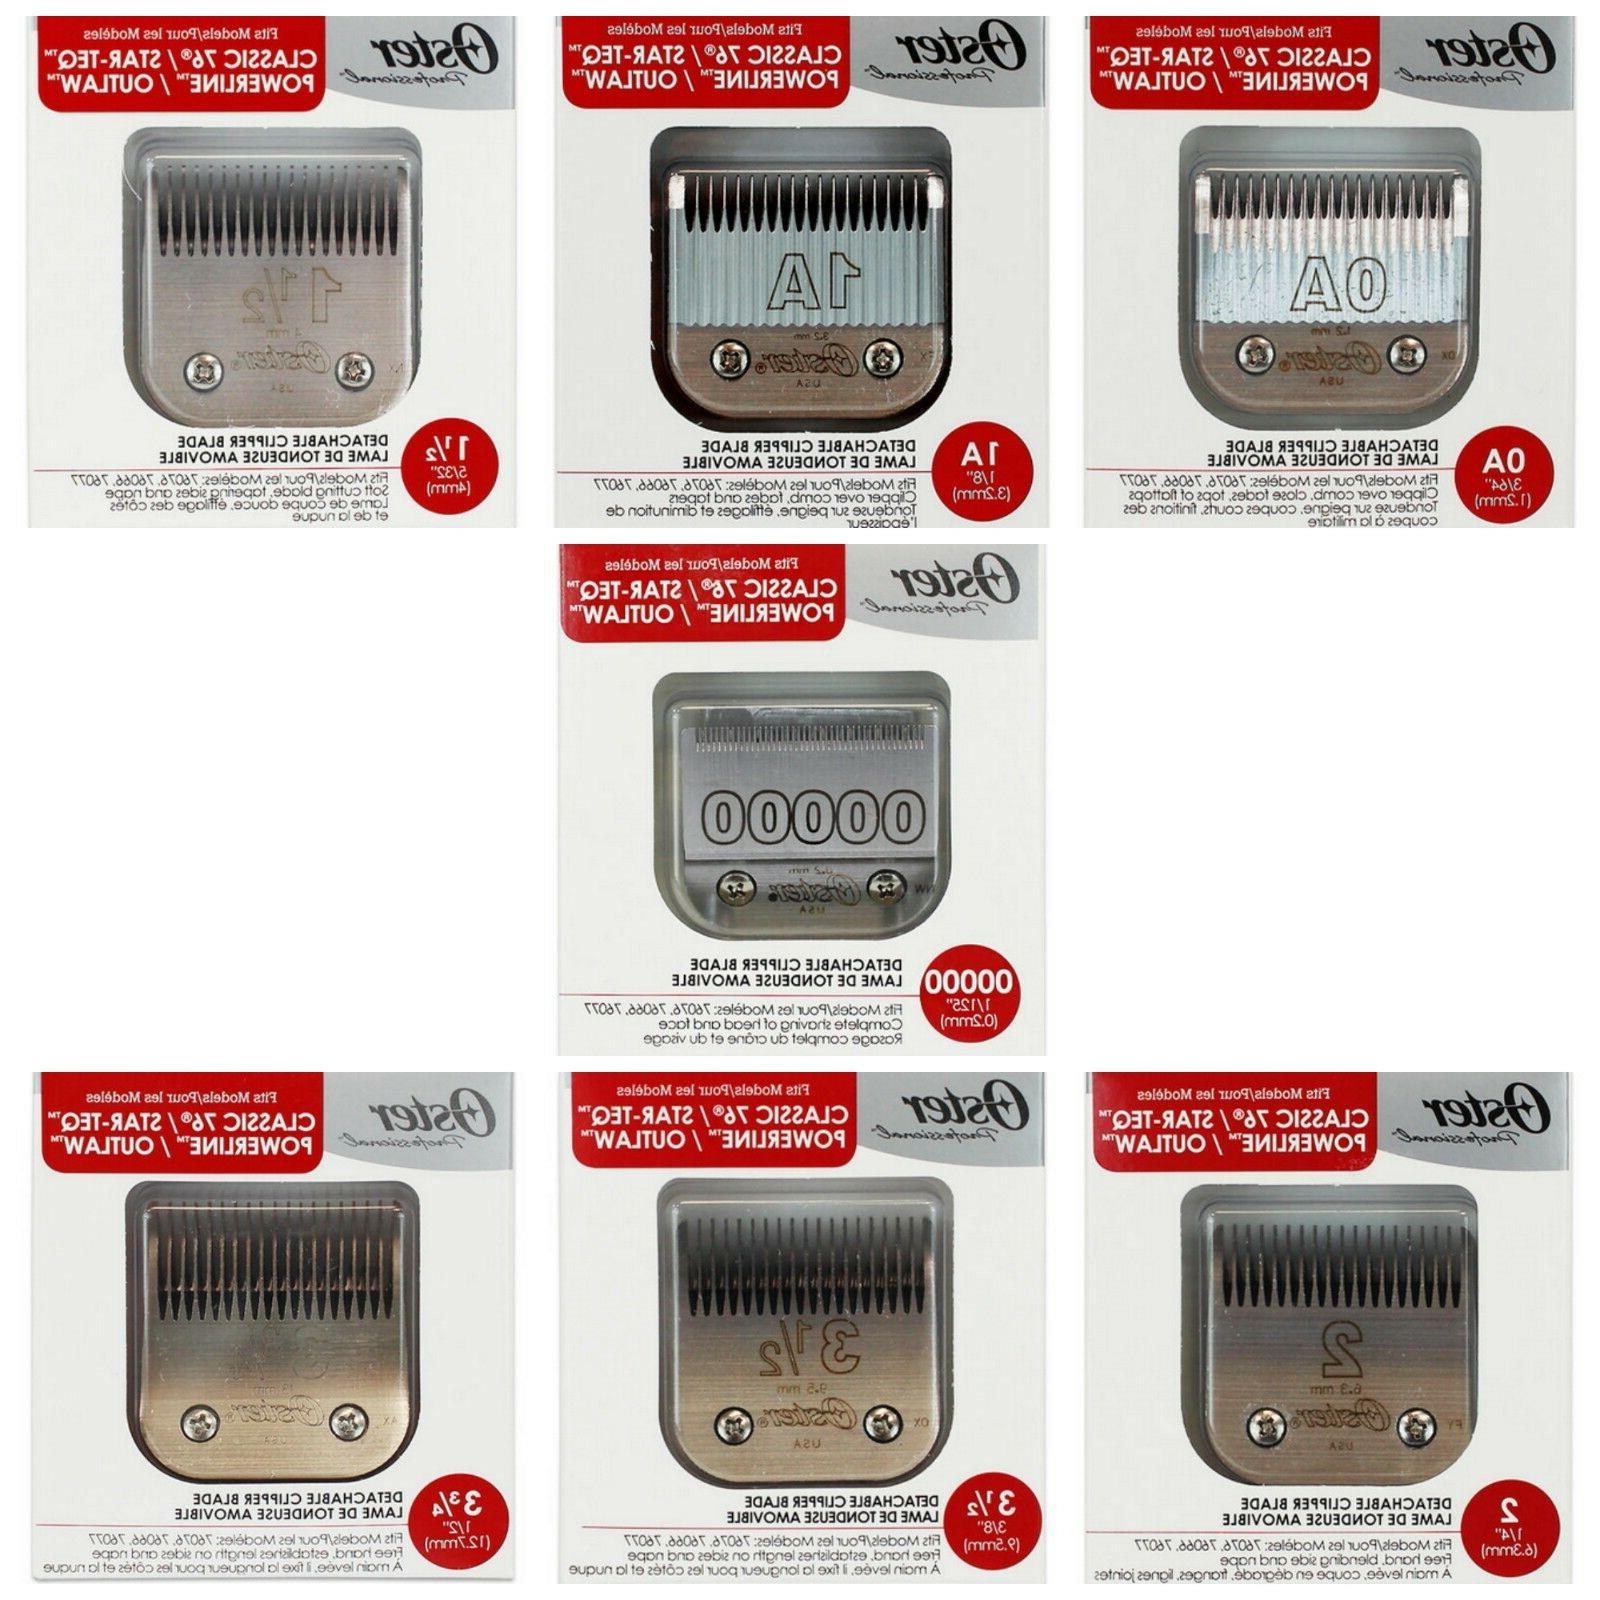 Oster Clipper Blades Blades! Selling Blades!